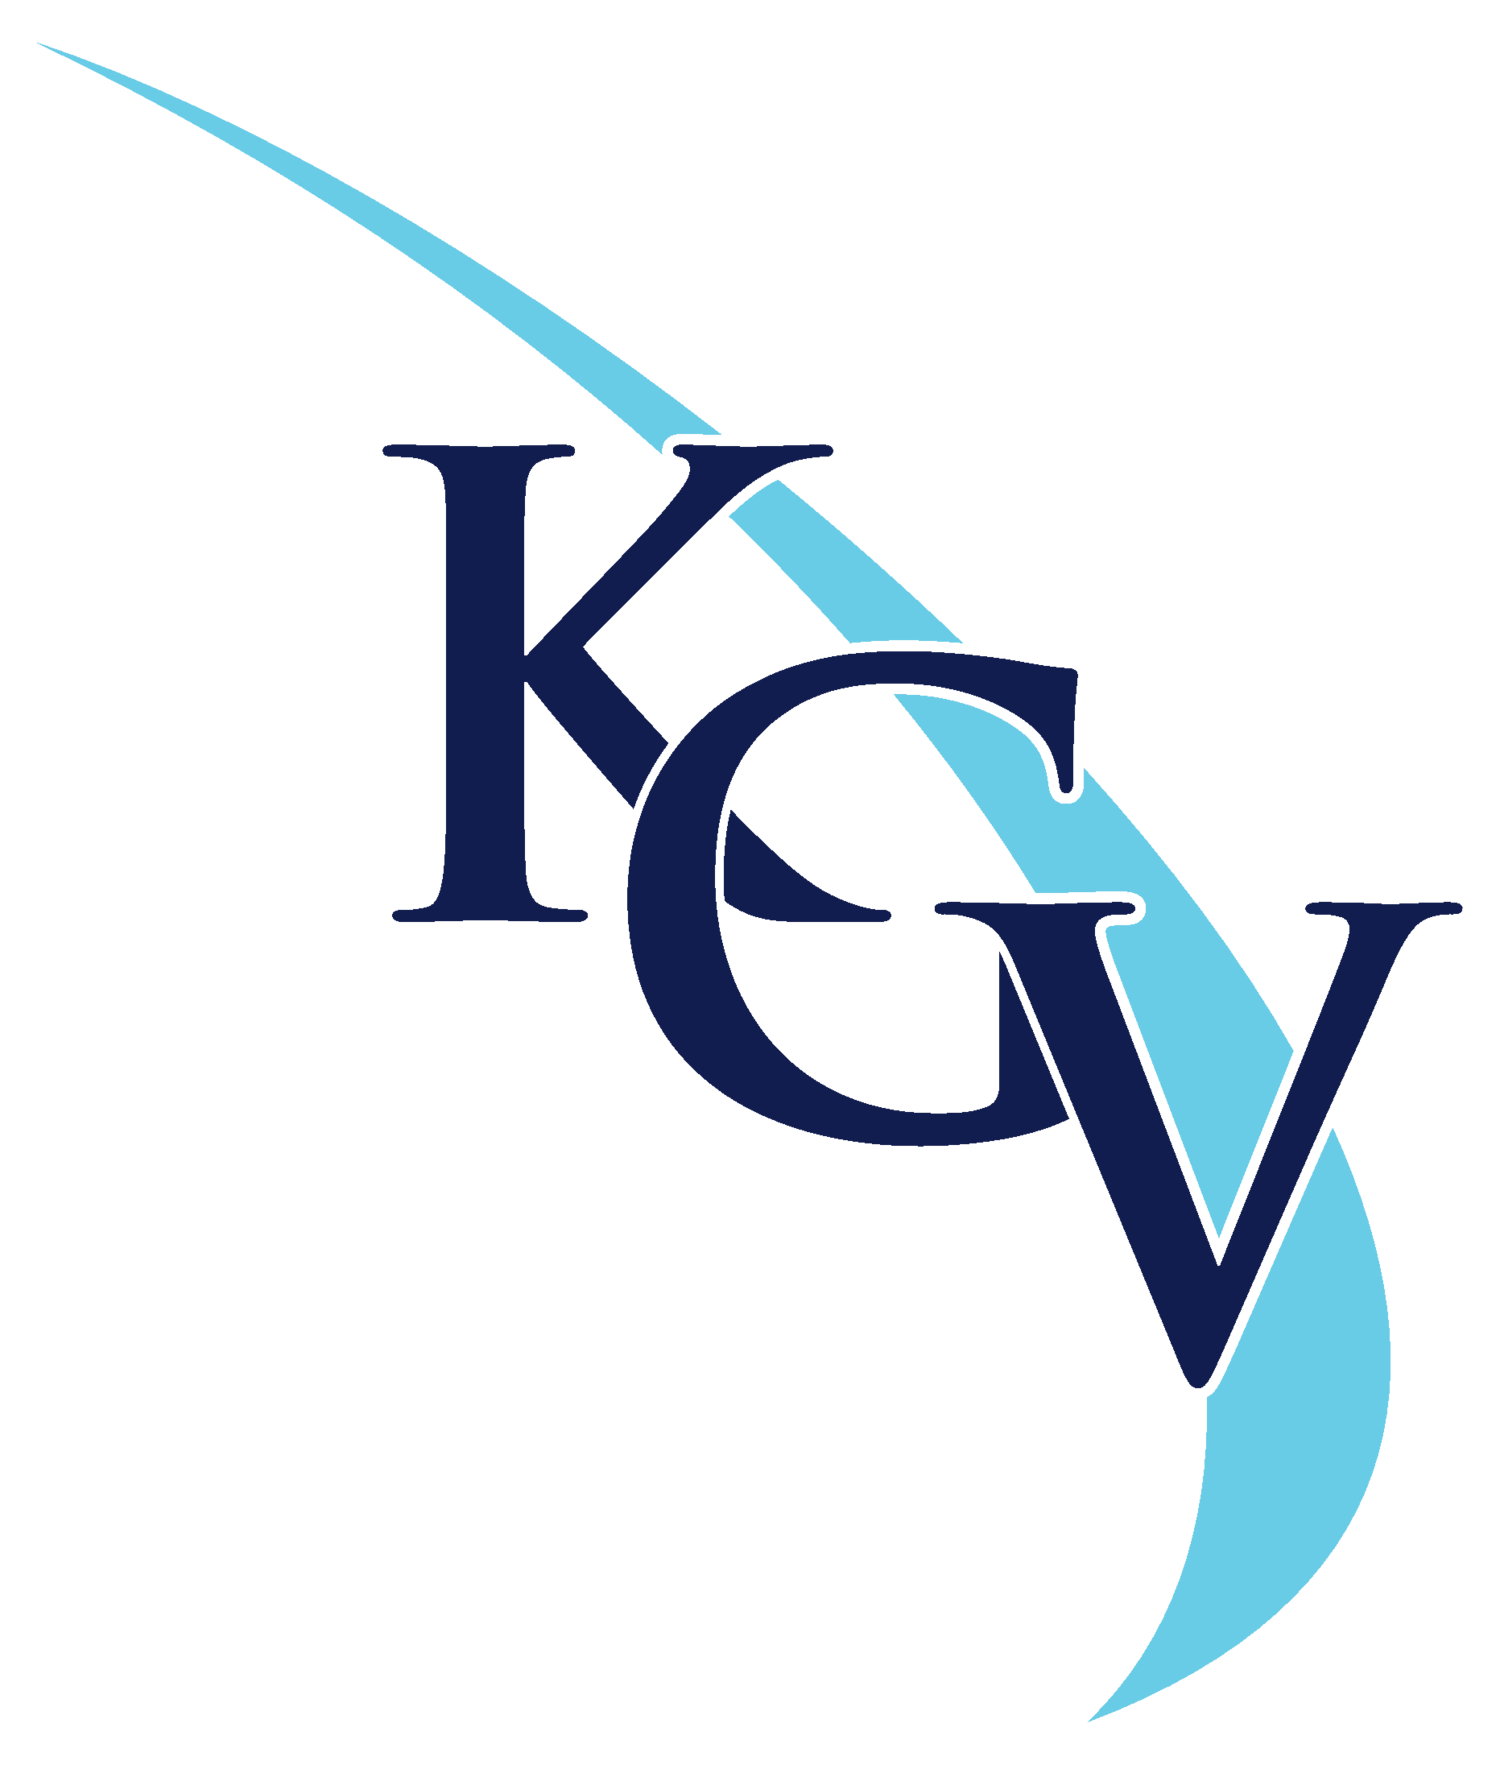 Kgv consultants . Teamwork clipart consultancy